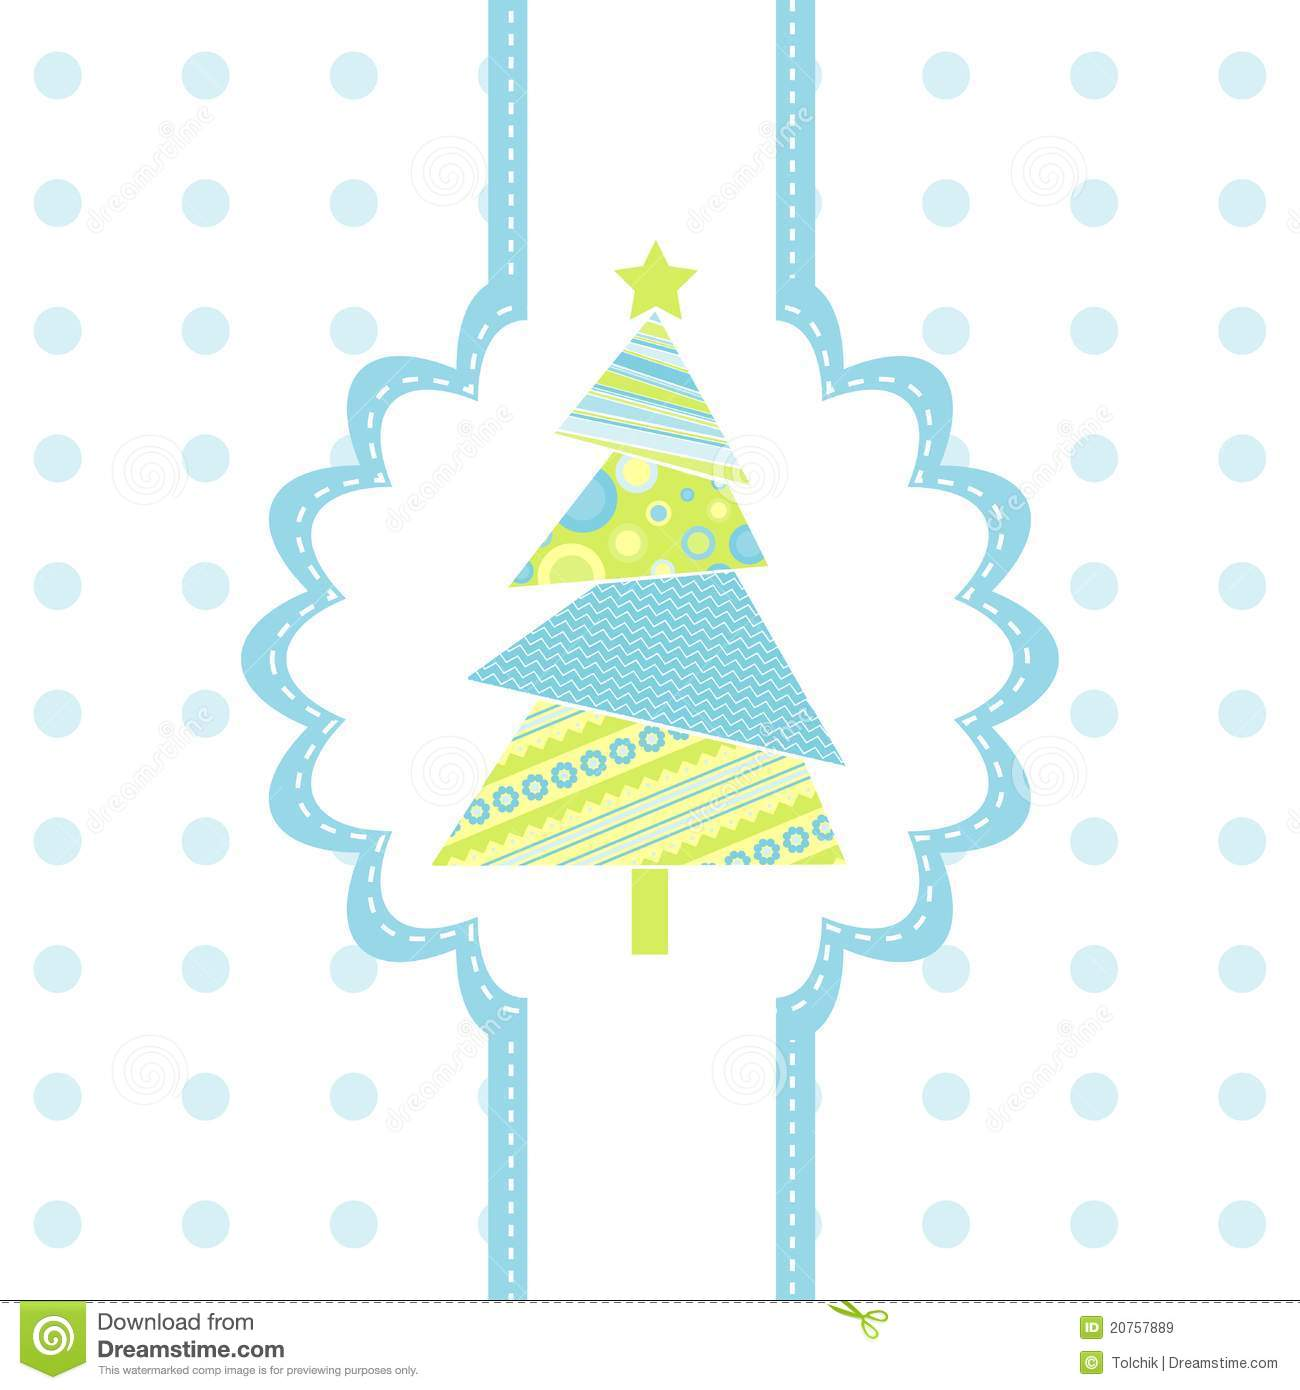 Template Christmas Greeting Card Royalty Free Stock Images   Image ETzqwJx1